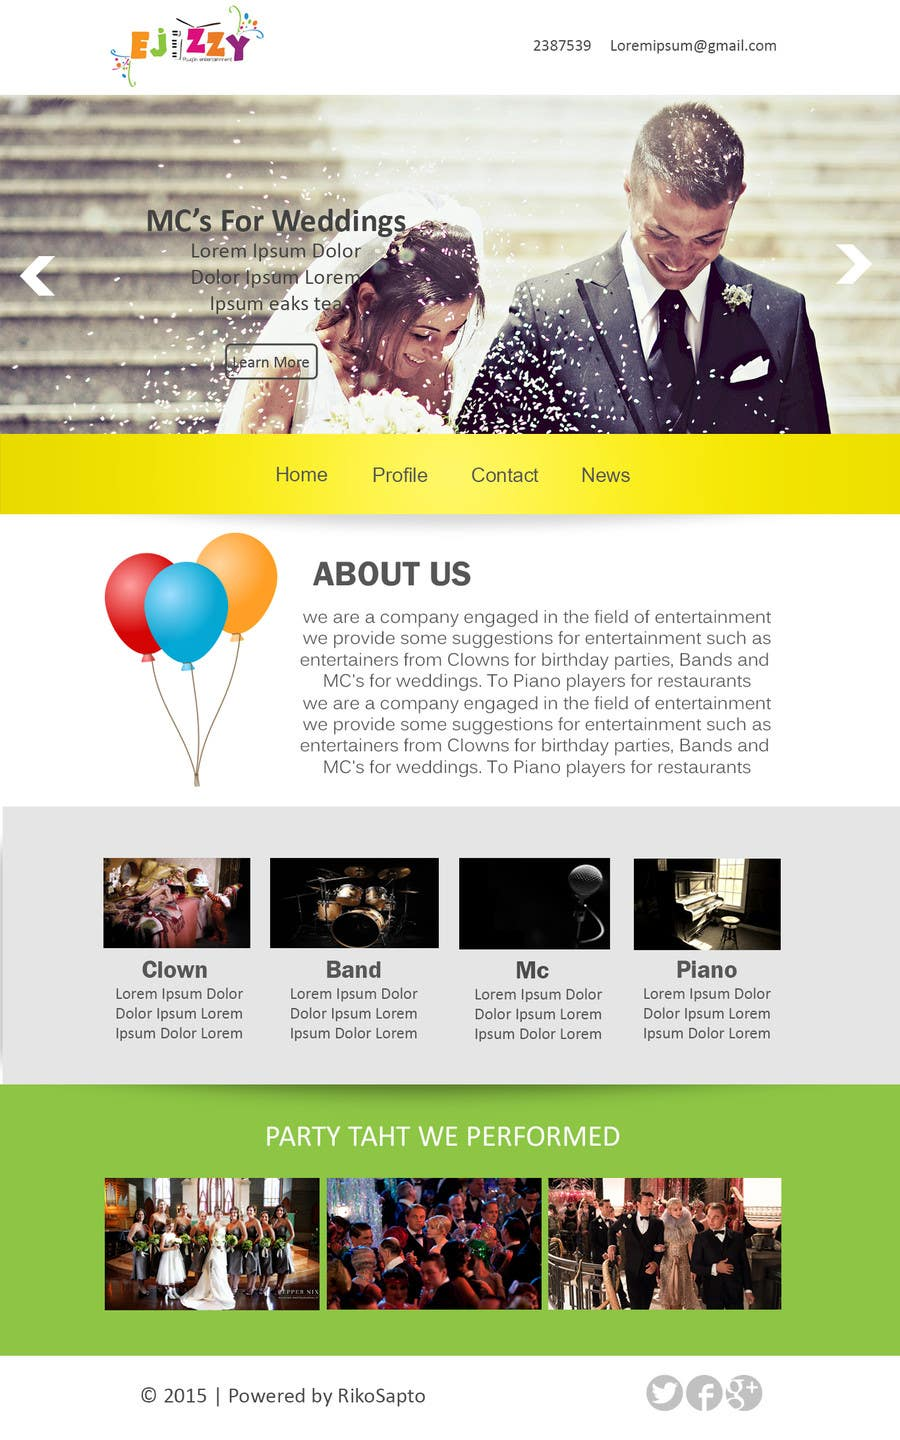 Konkurrenceindlæg #                                        17                                      for                                         Design a Website Mockup for Entertainment Industry